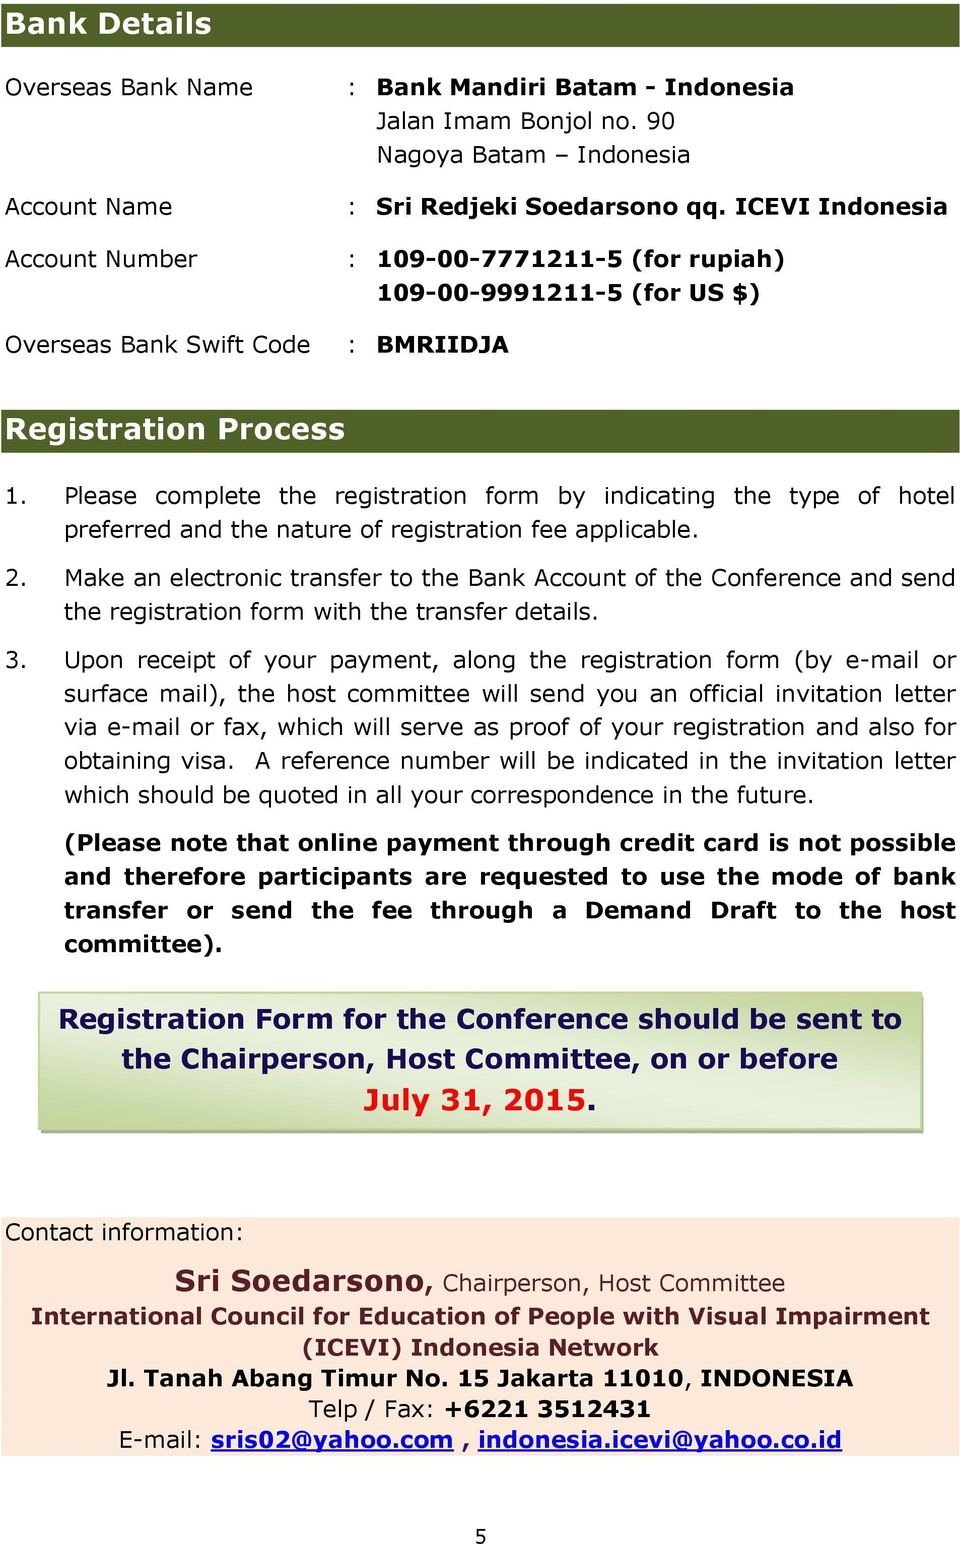 Please complete the registration form by indicating the type of hotel preferred and the nature of registration fee applicable. 2.